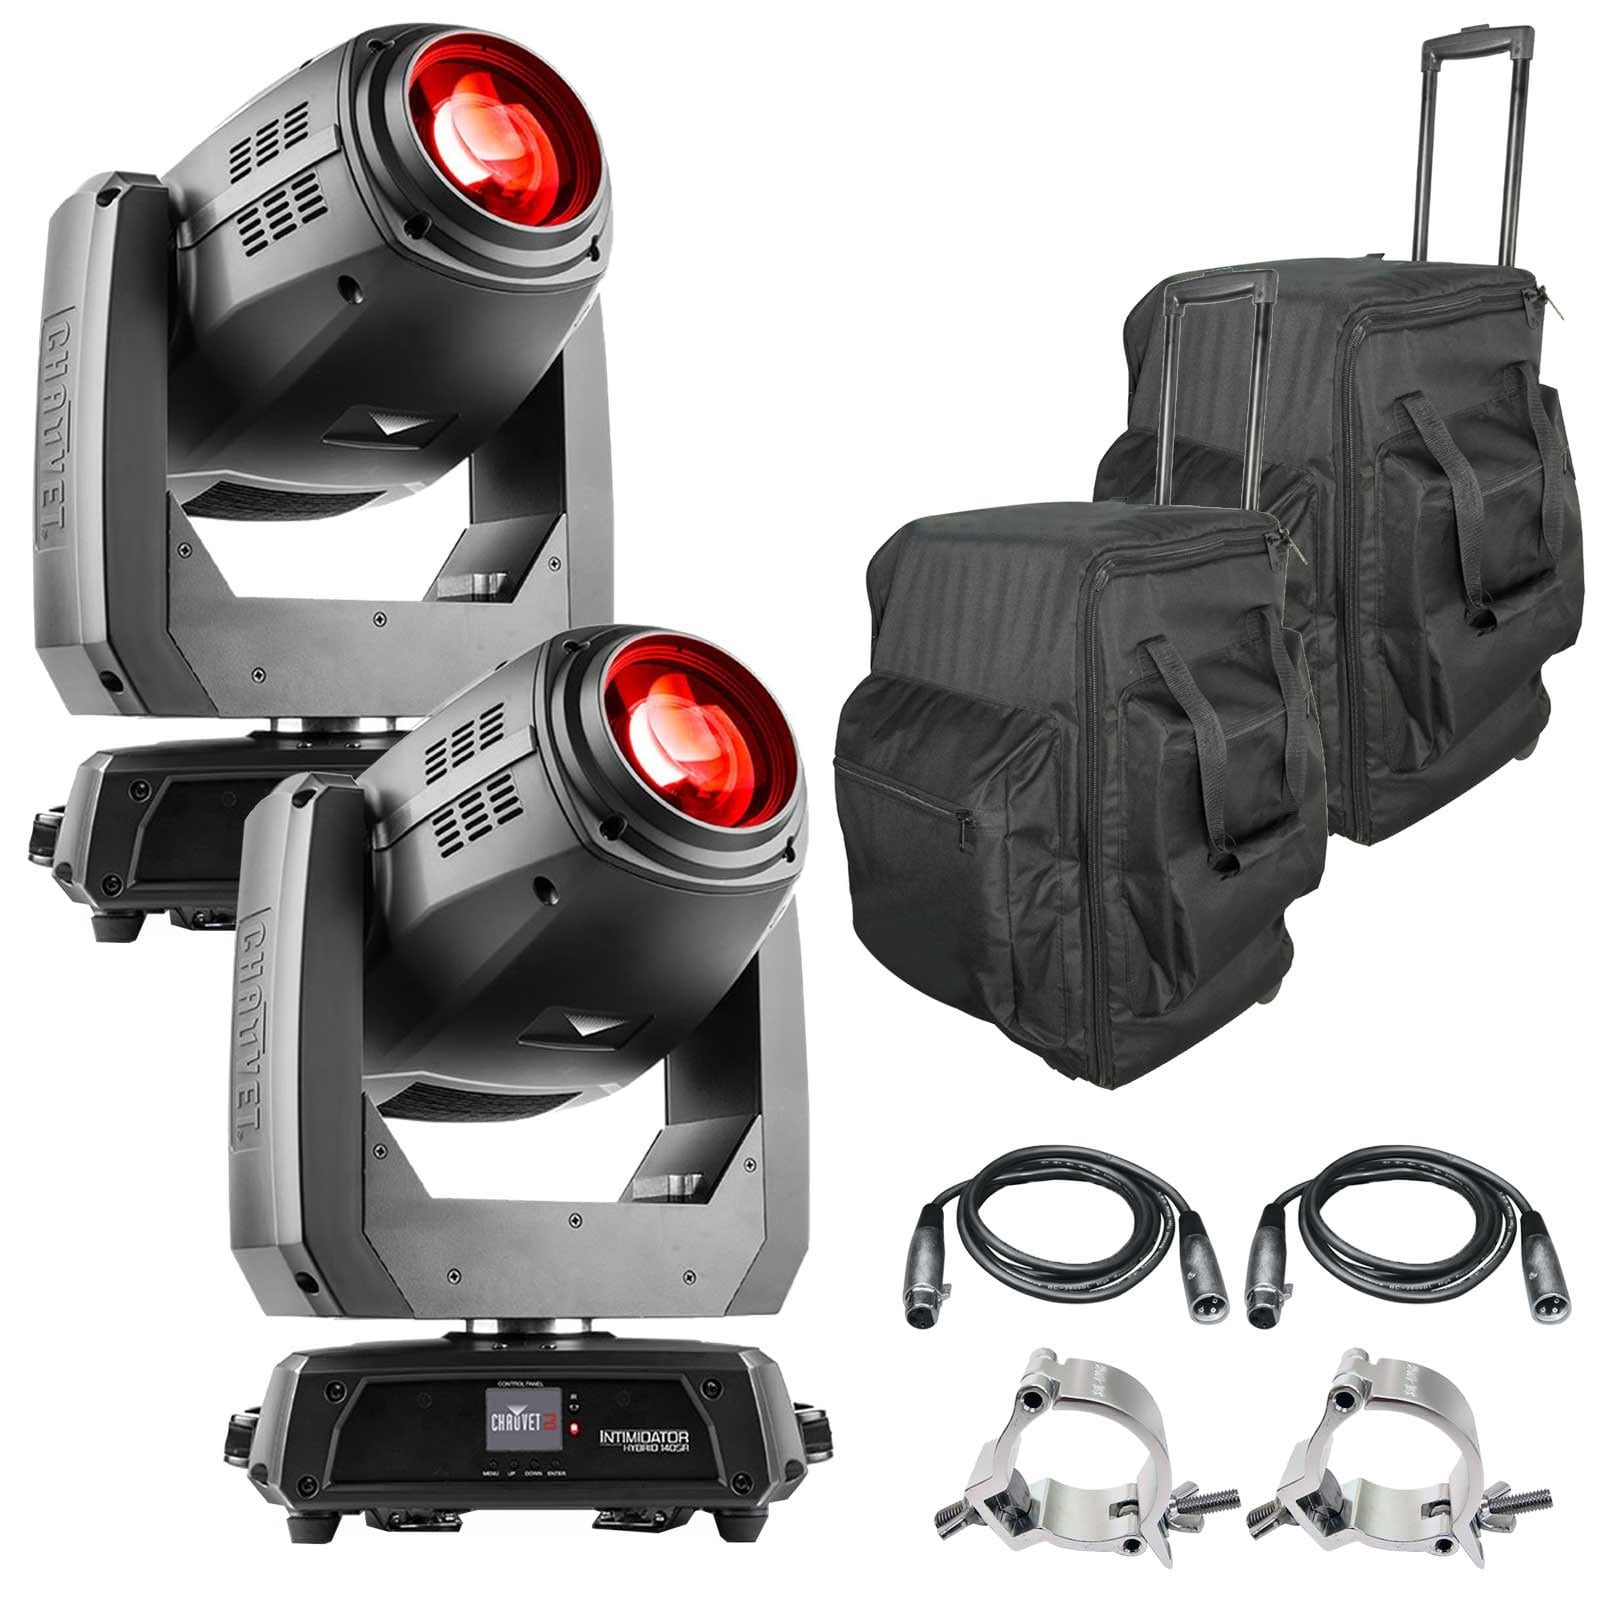 2-chauvet-dj-intimidator-hybrid-140sr-moving-head-lights-with-cases-package-c9a.jpg